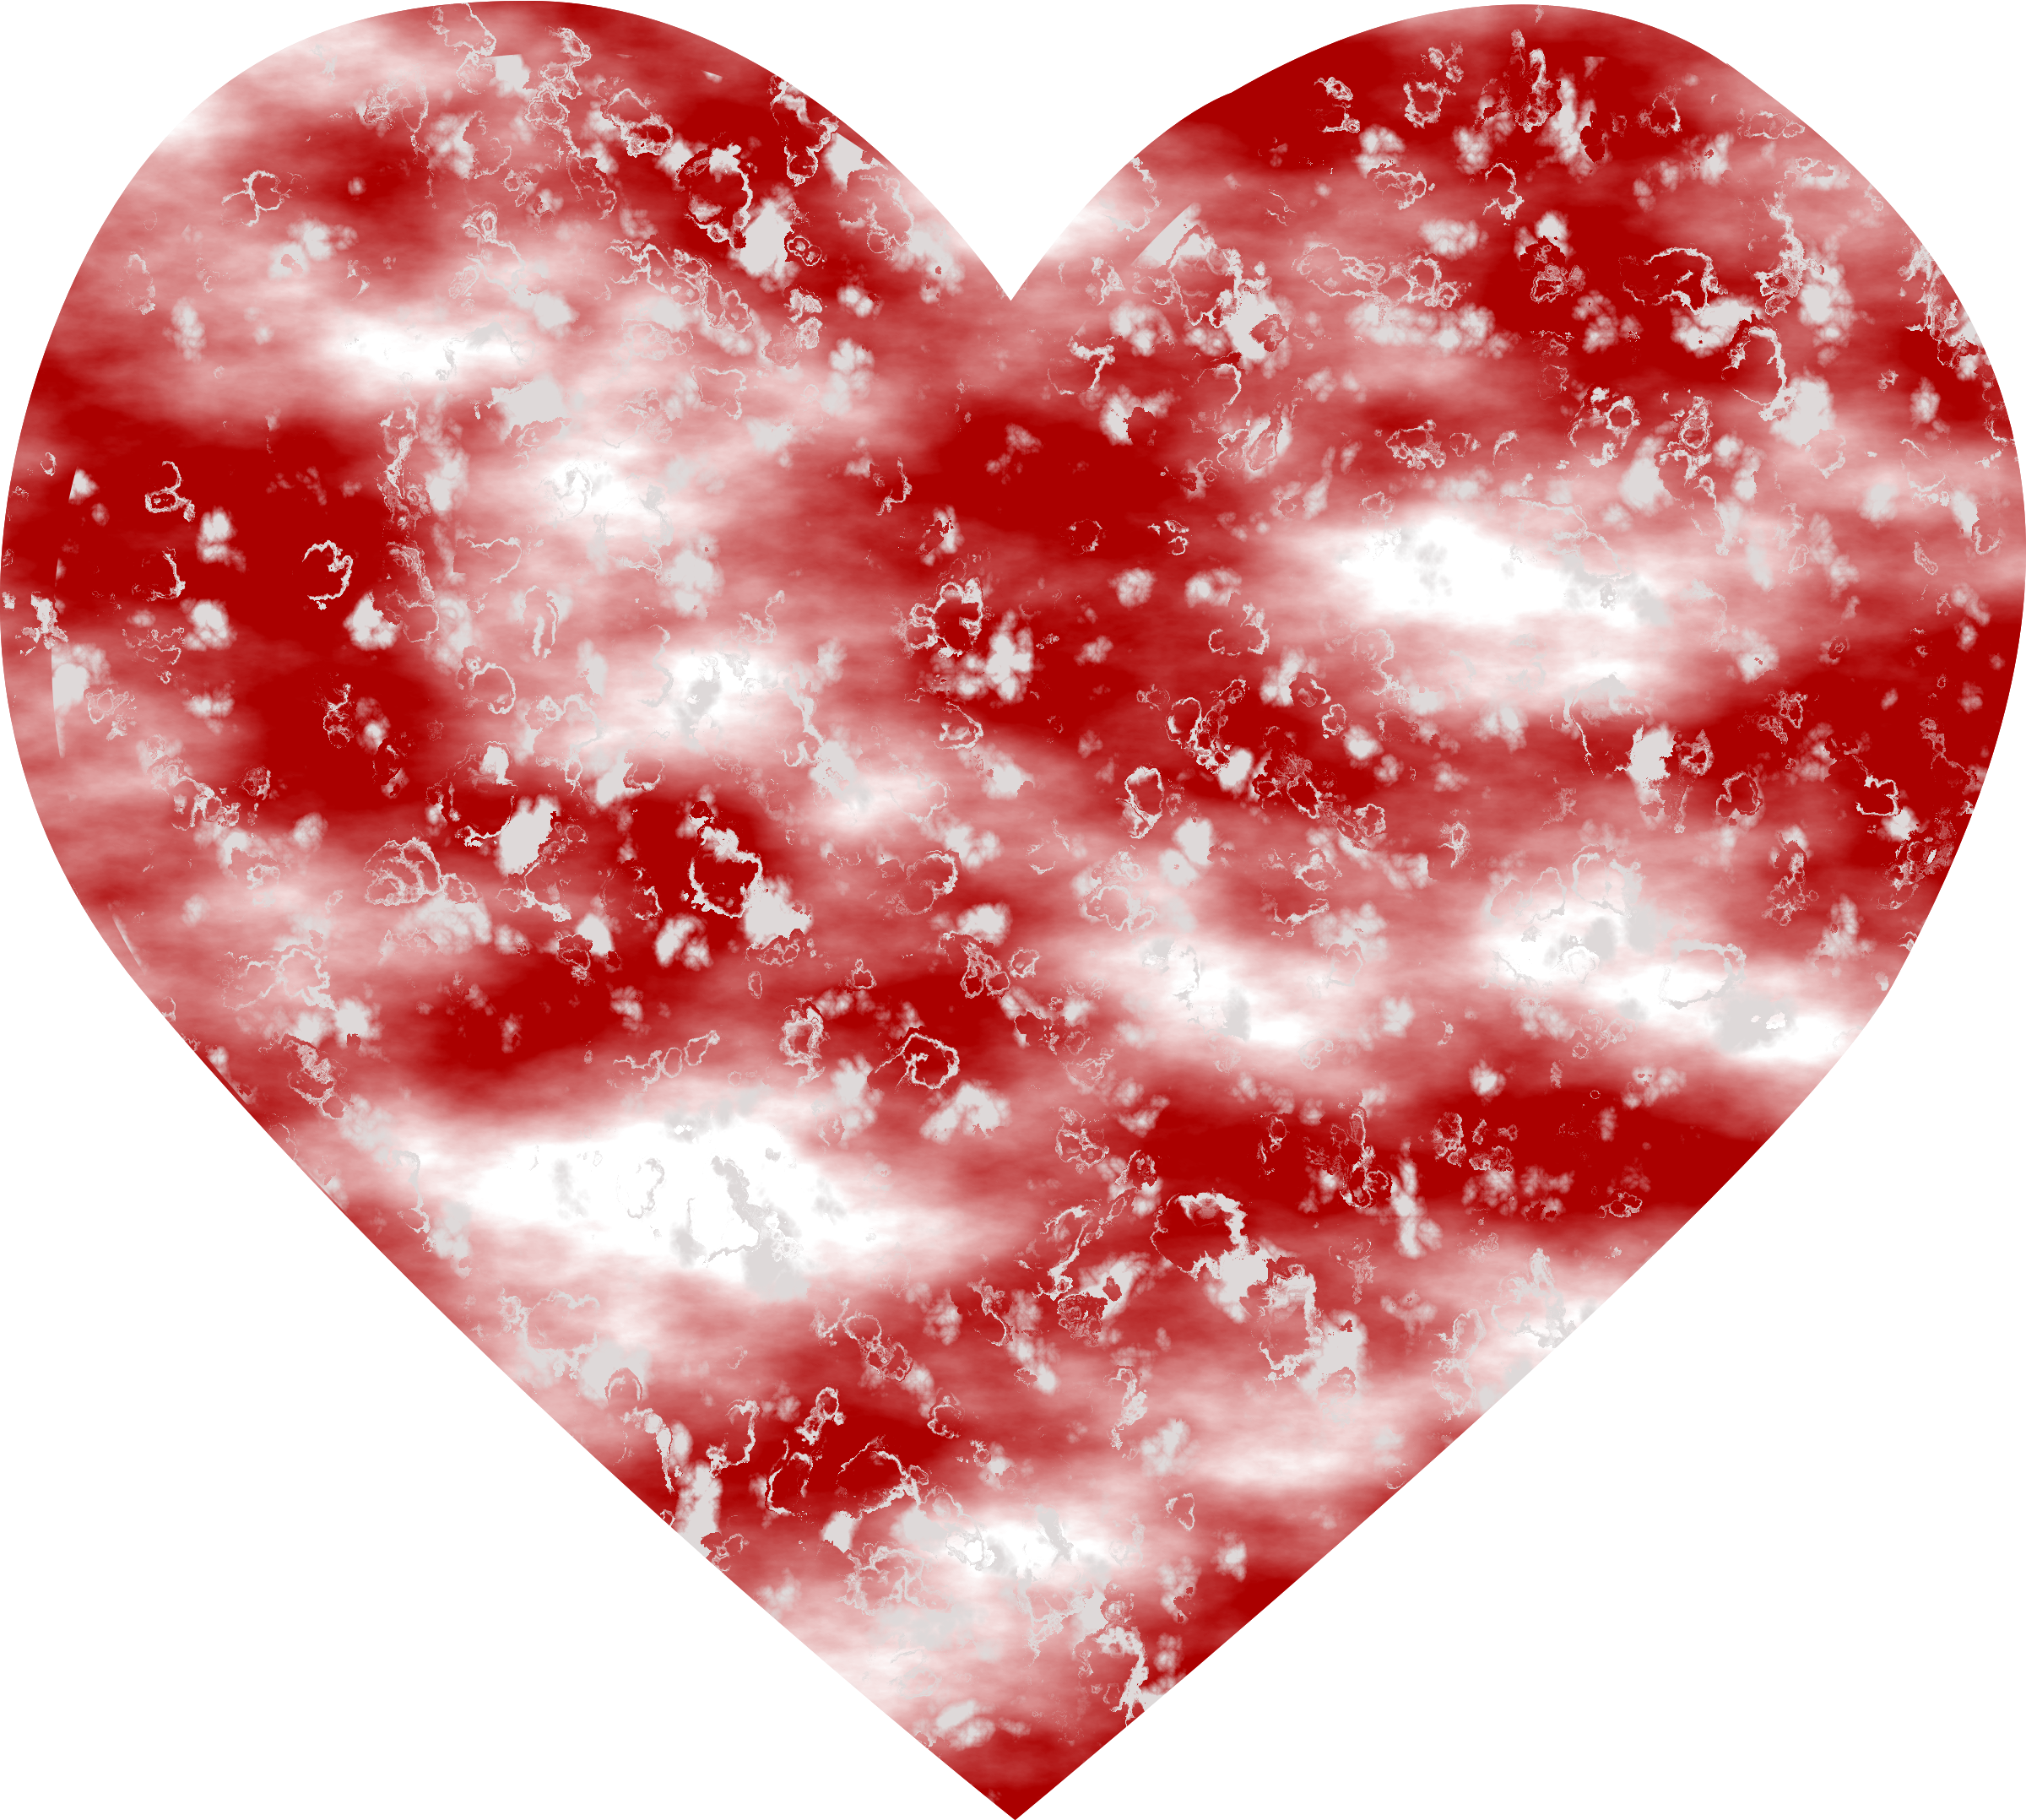 Textured heart 3 by Firkin